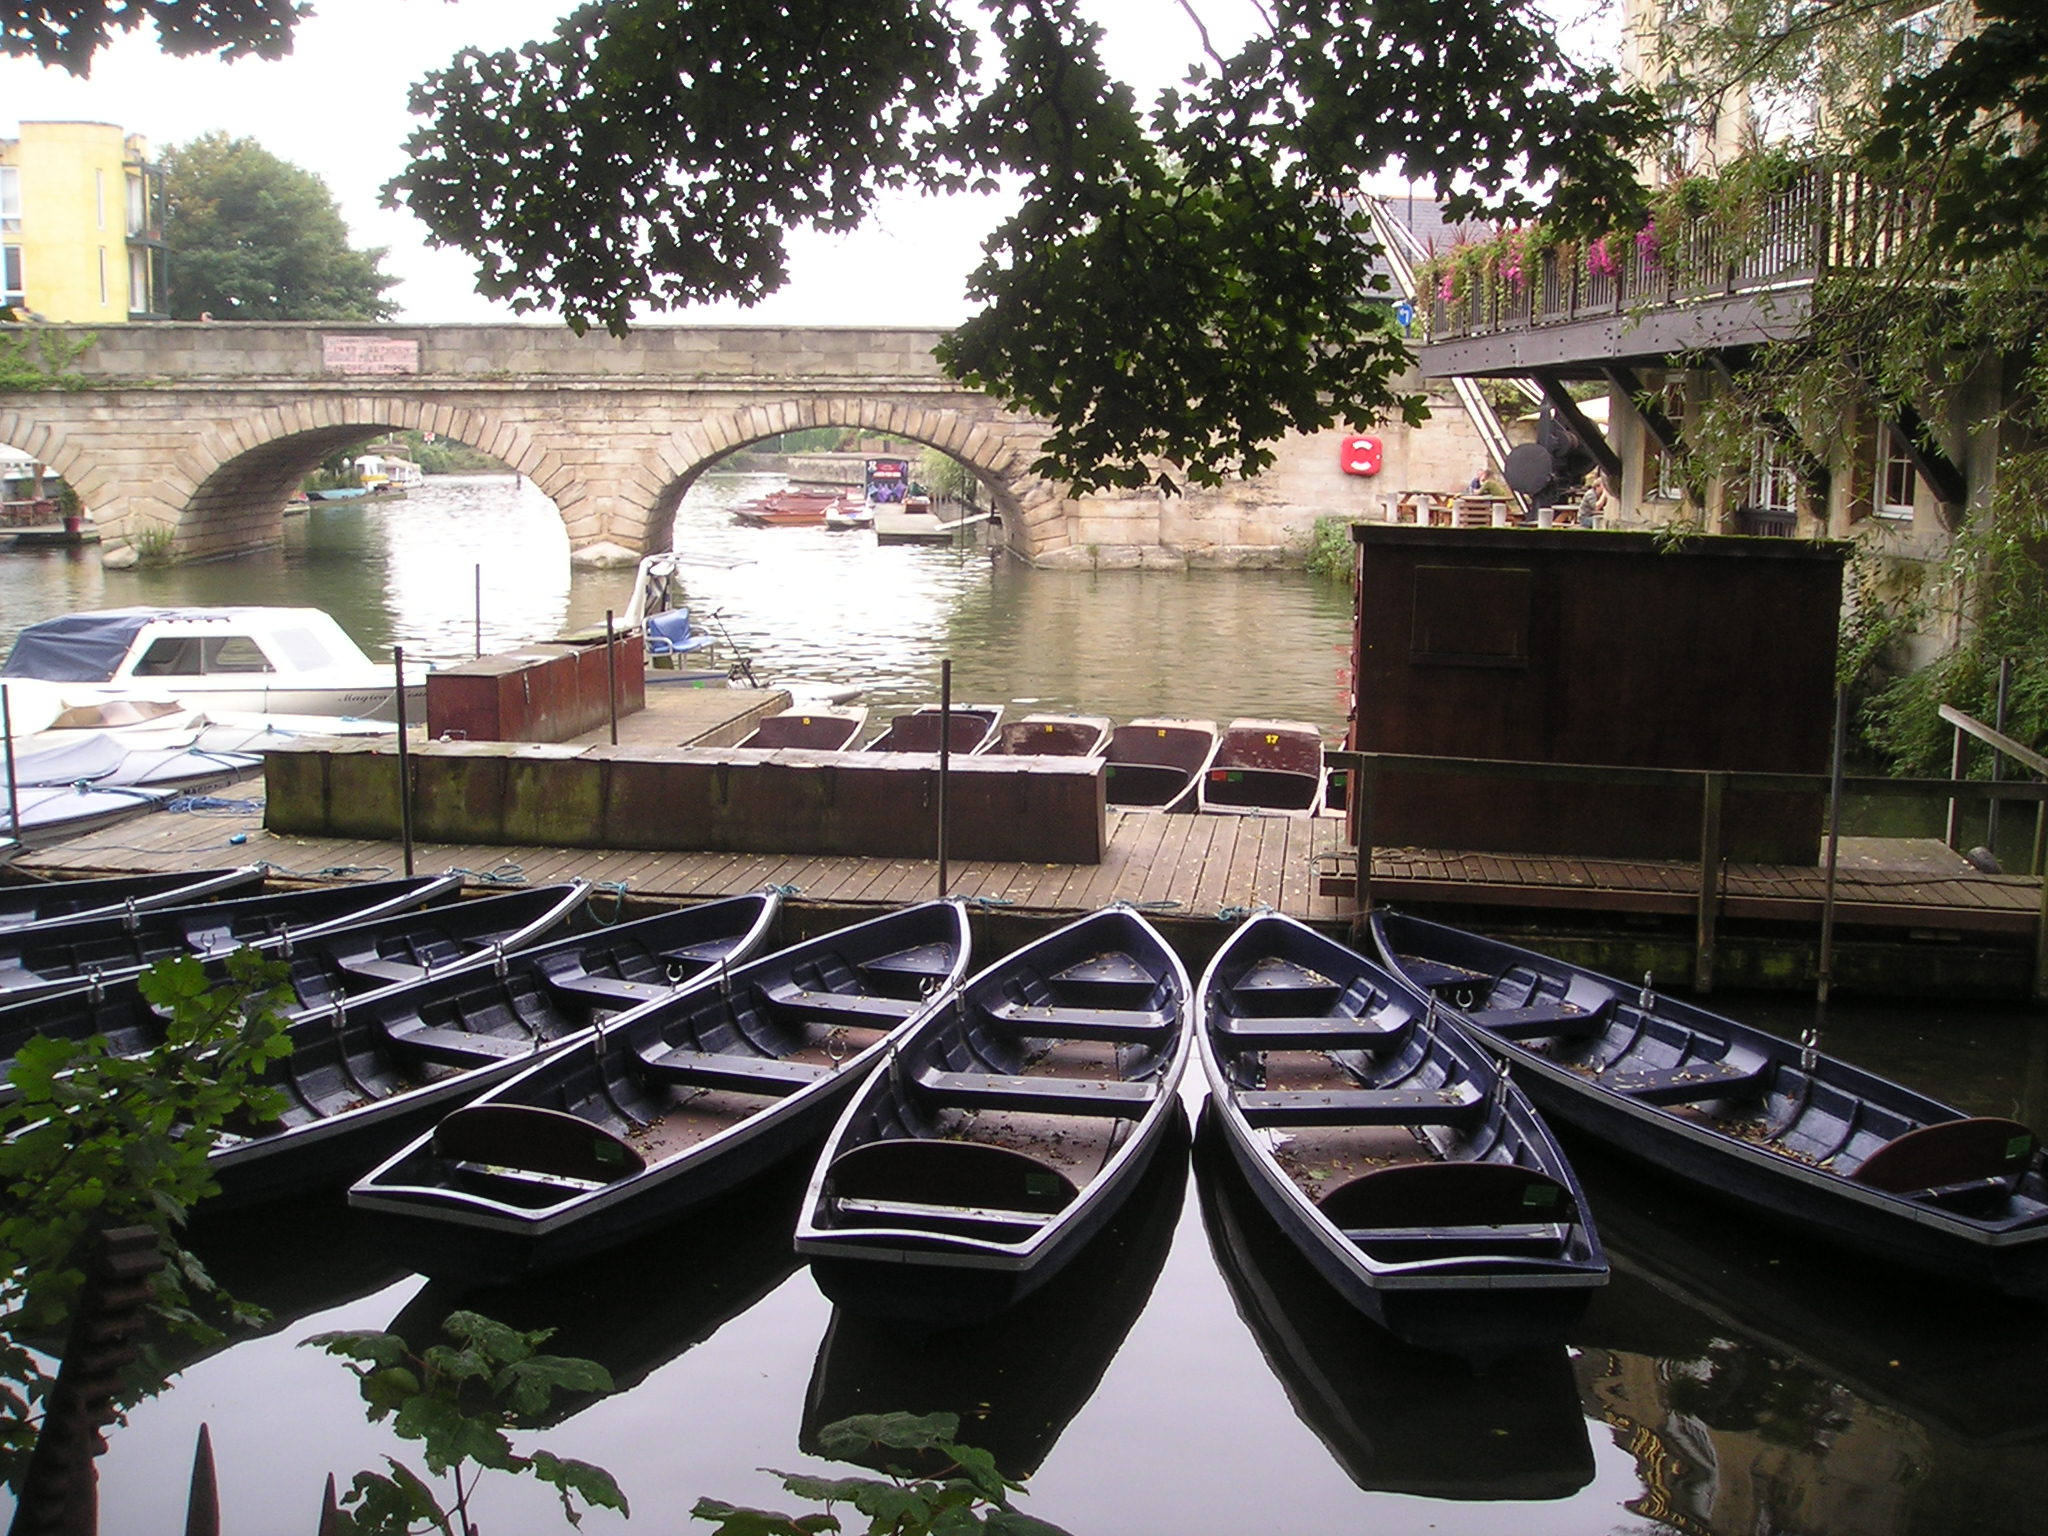 Boat rentals in Oxford